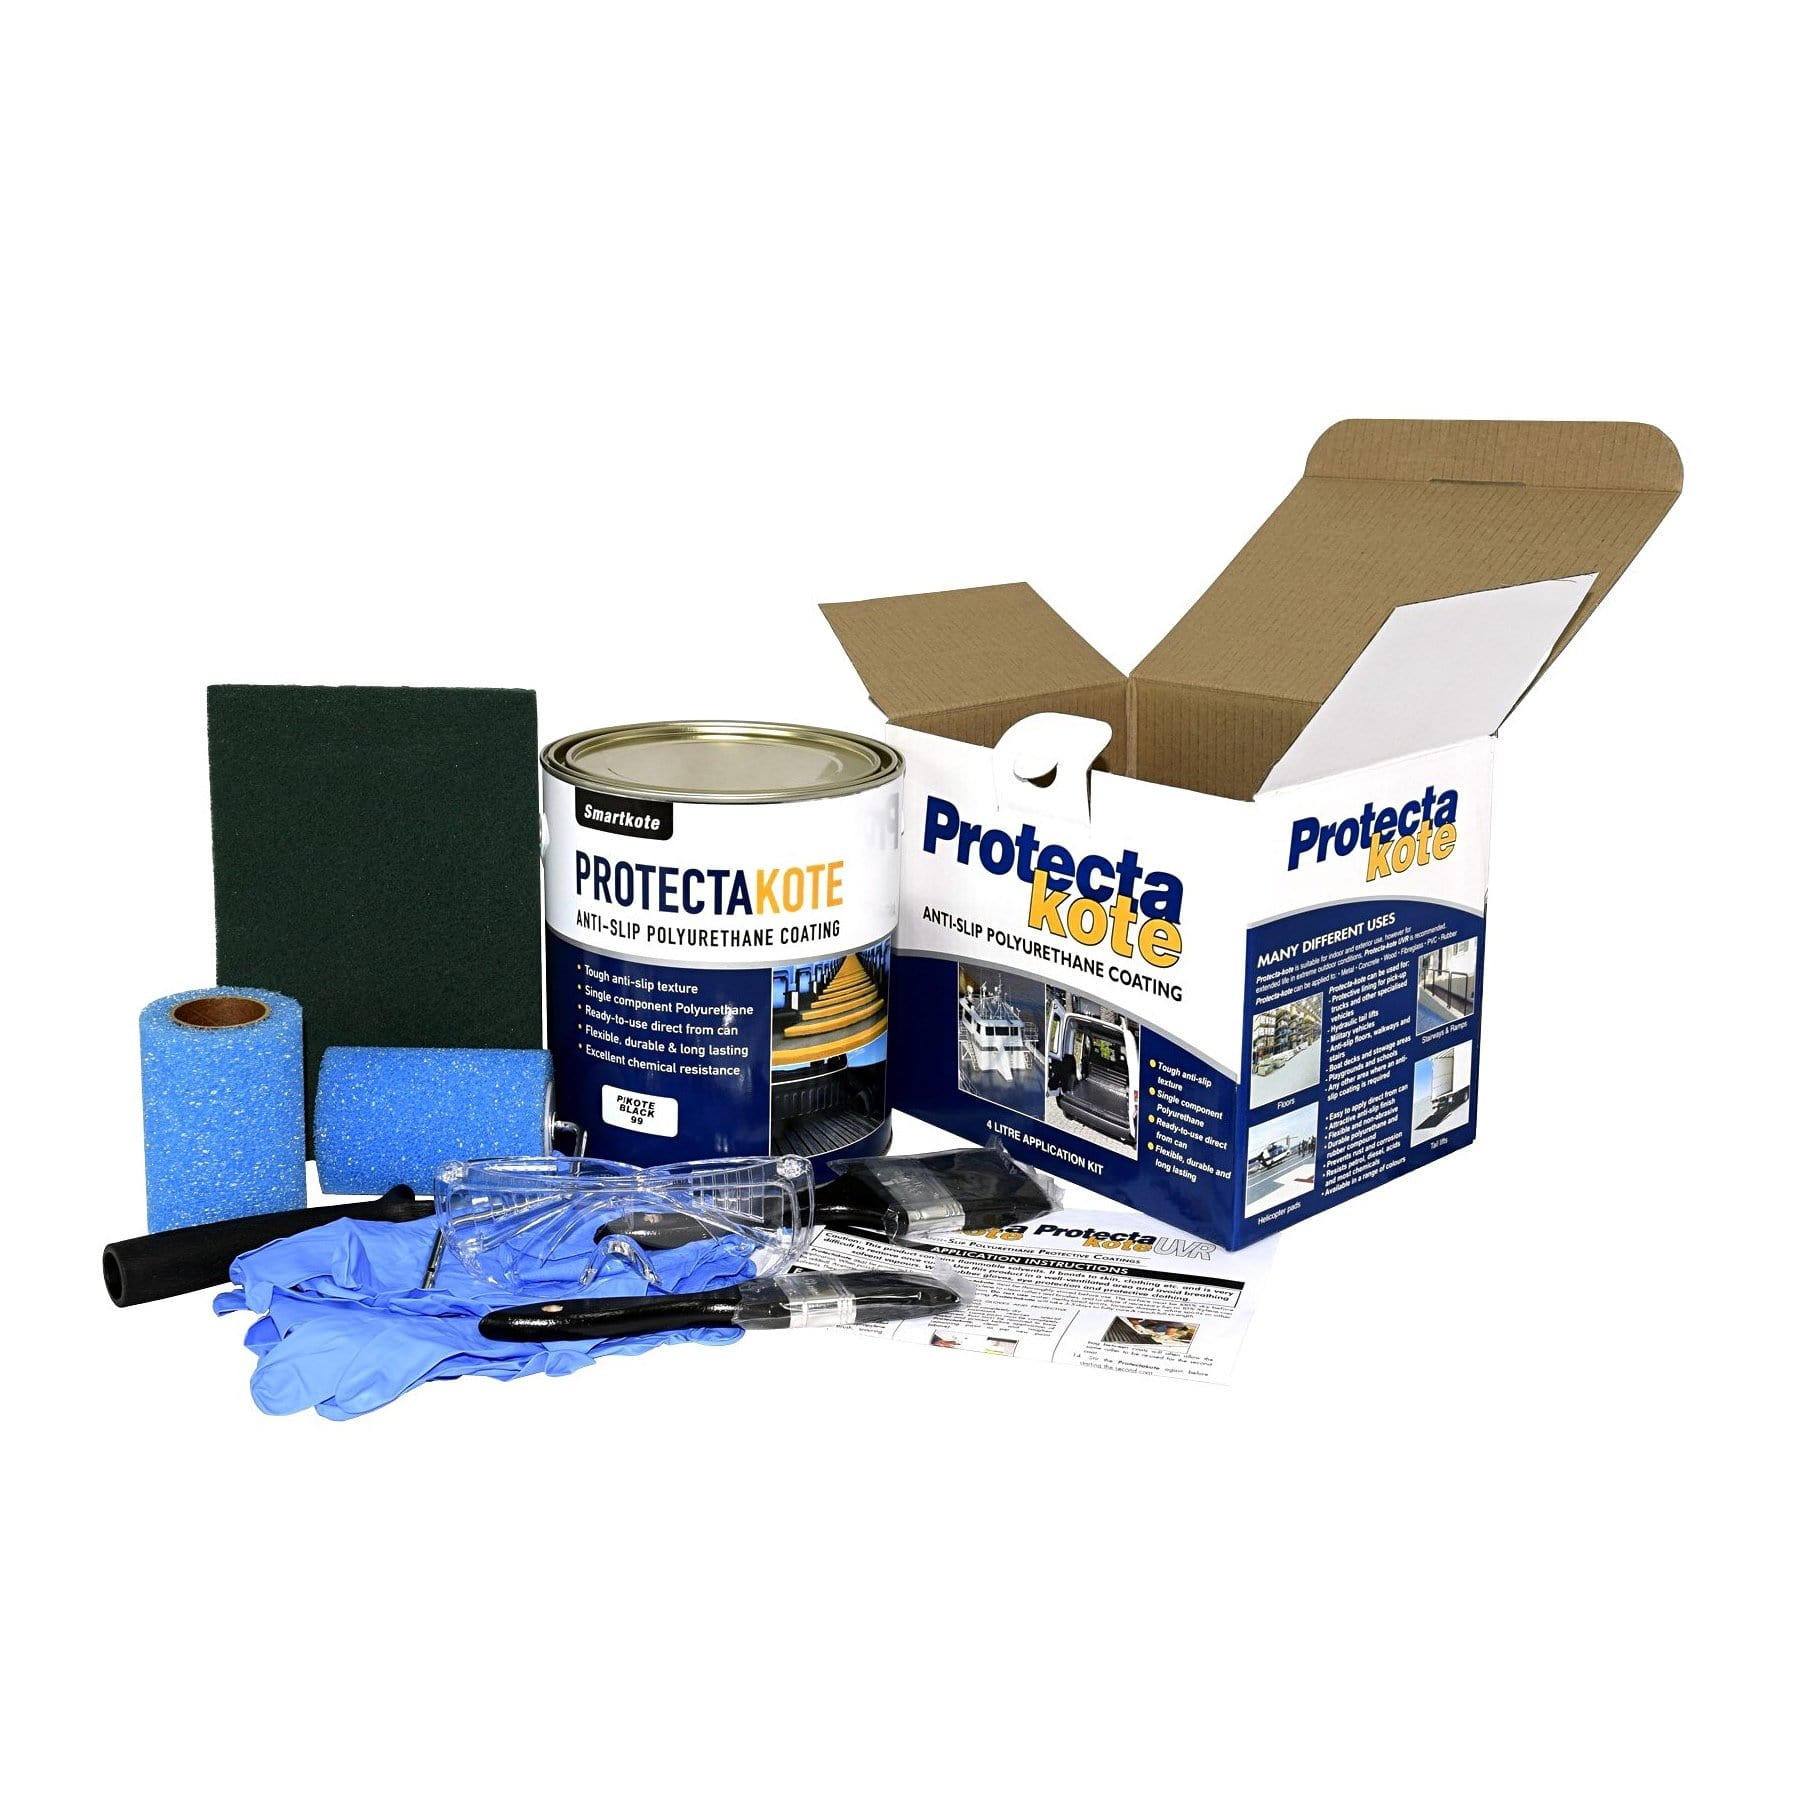 PROTECTA-KOTE Bedliner Kit - Window Cleaning Warehouse Ltd